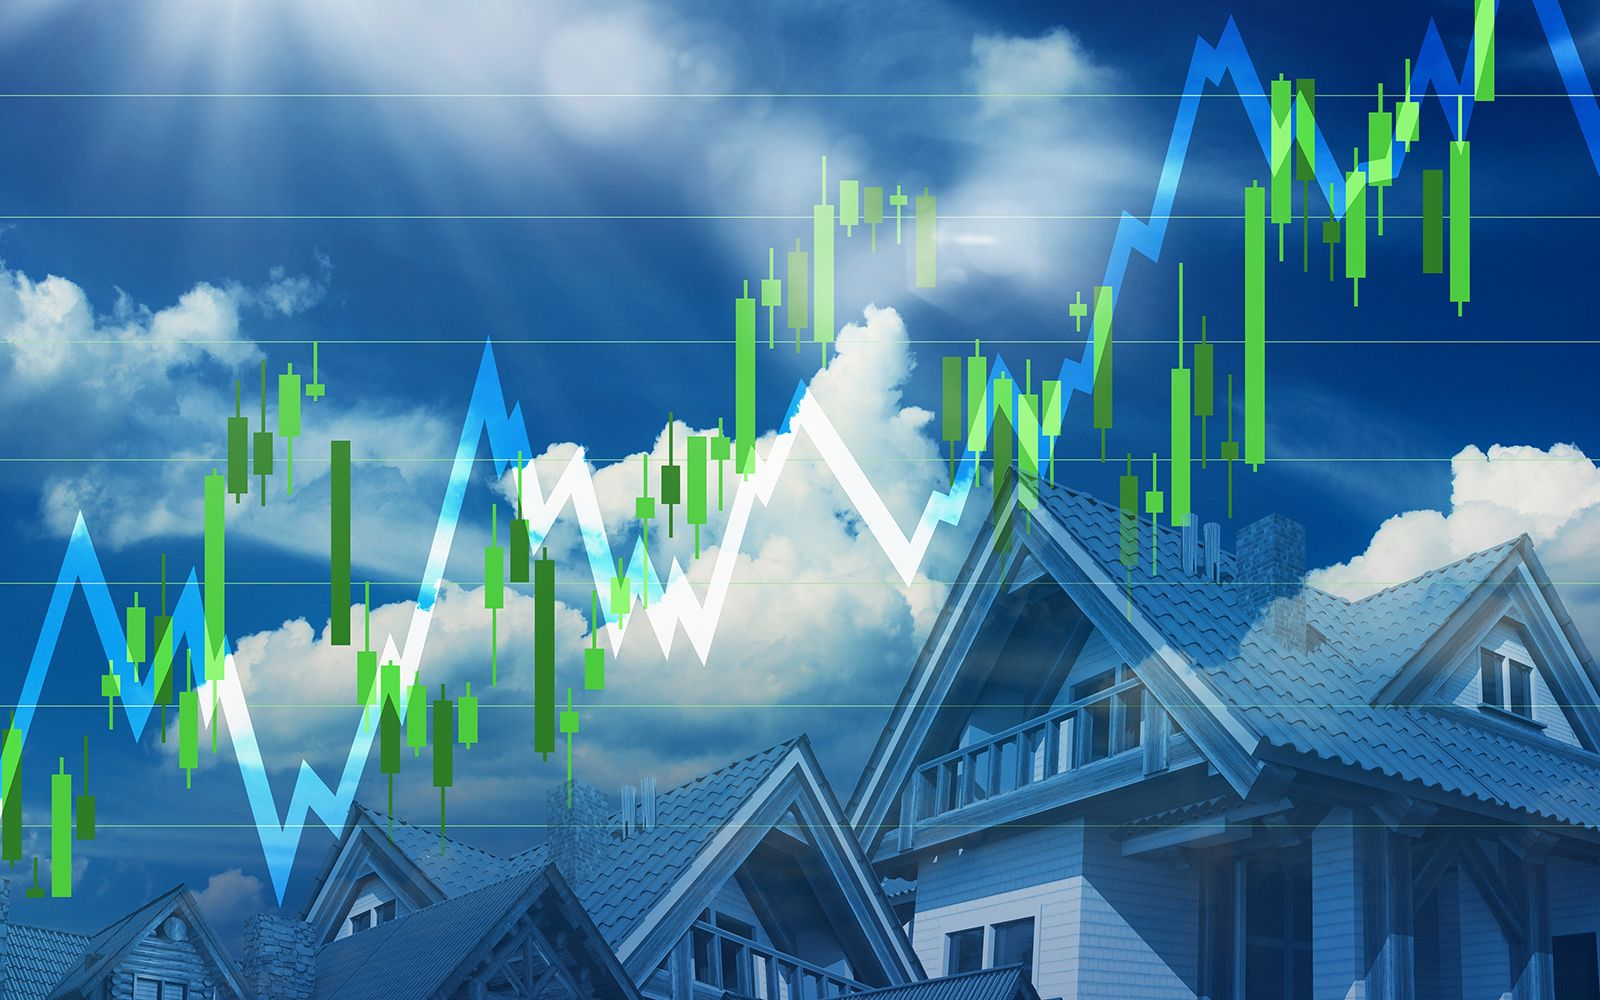 Price Tolerance Levels Get Tested In Math Of Household Growth